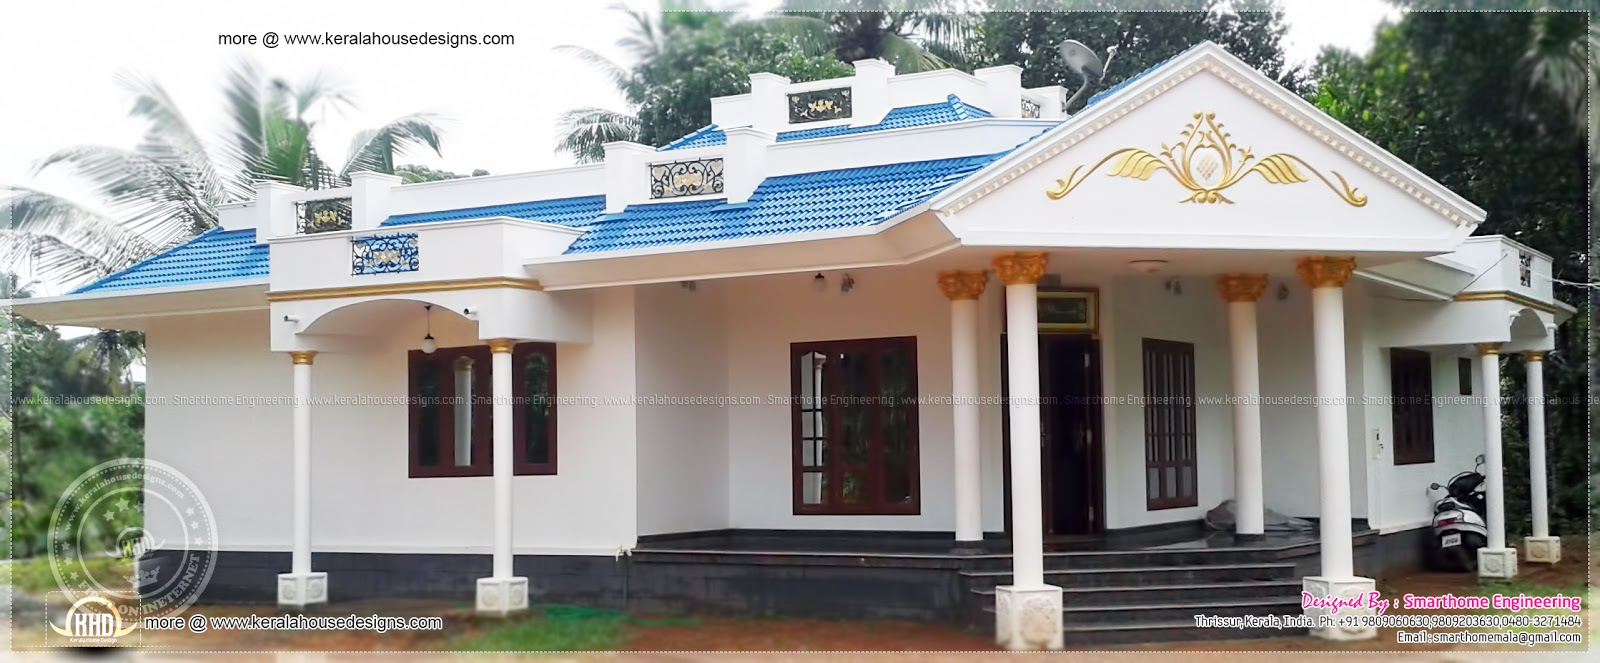 1680 sq ft 3 bedroom single floor house kerala home for Single storey 3 bedroom house plans in kerala